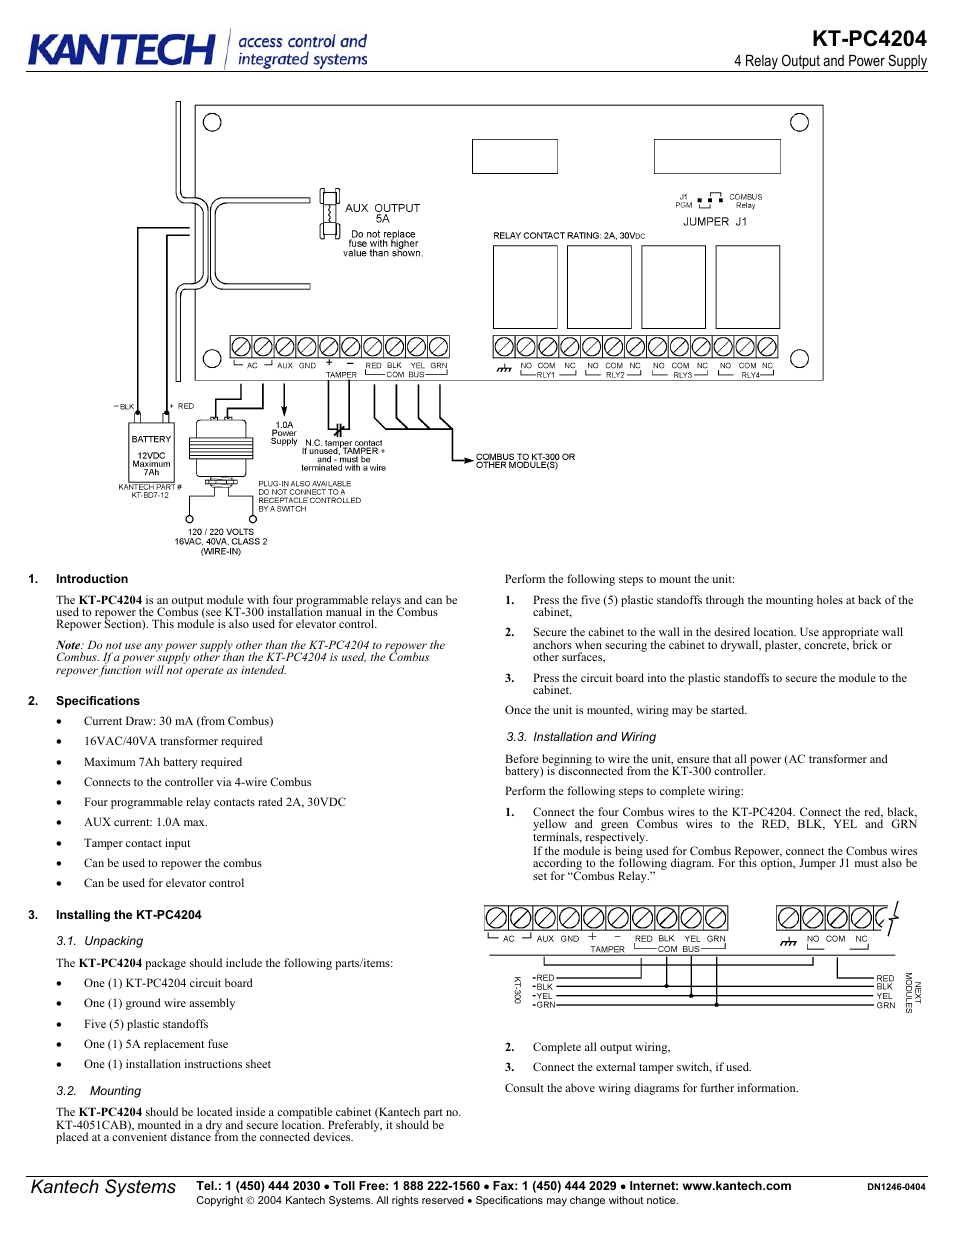 Kantech Kt Pc4204 User Manual 2 Pages Tamper Wiring Diagram For